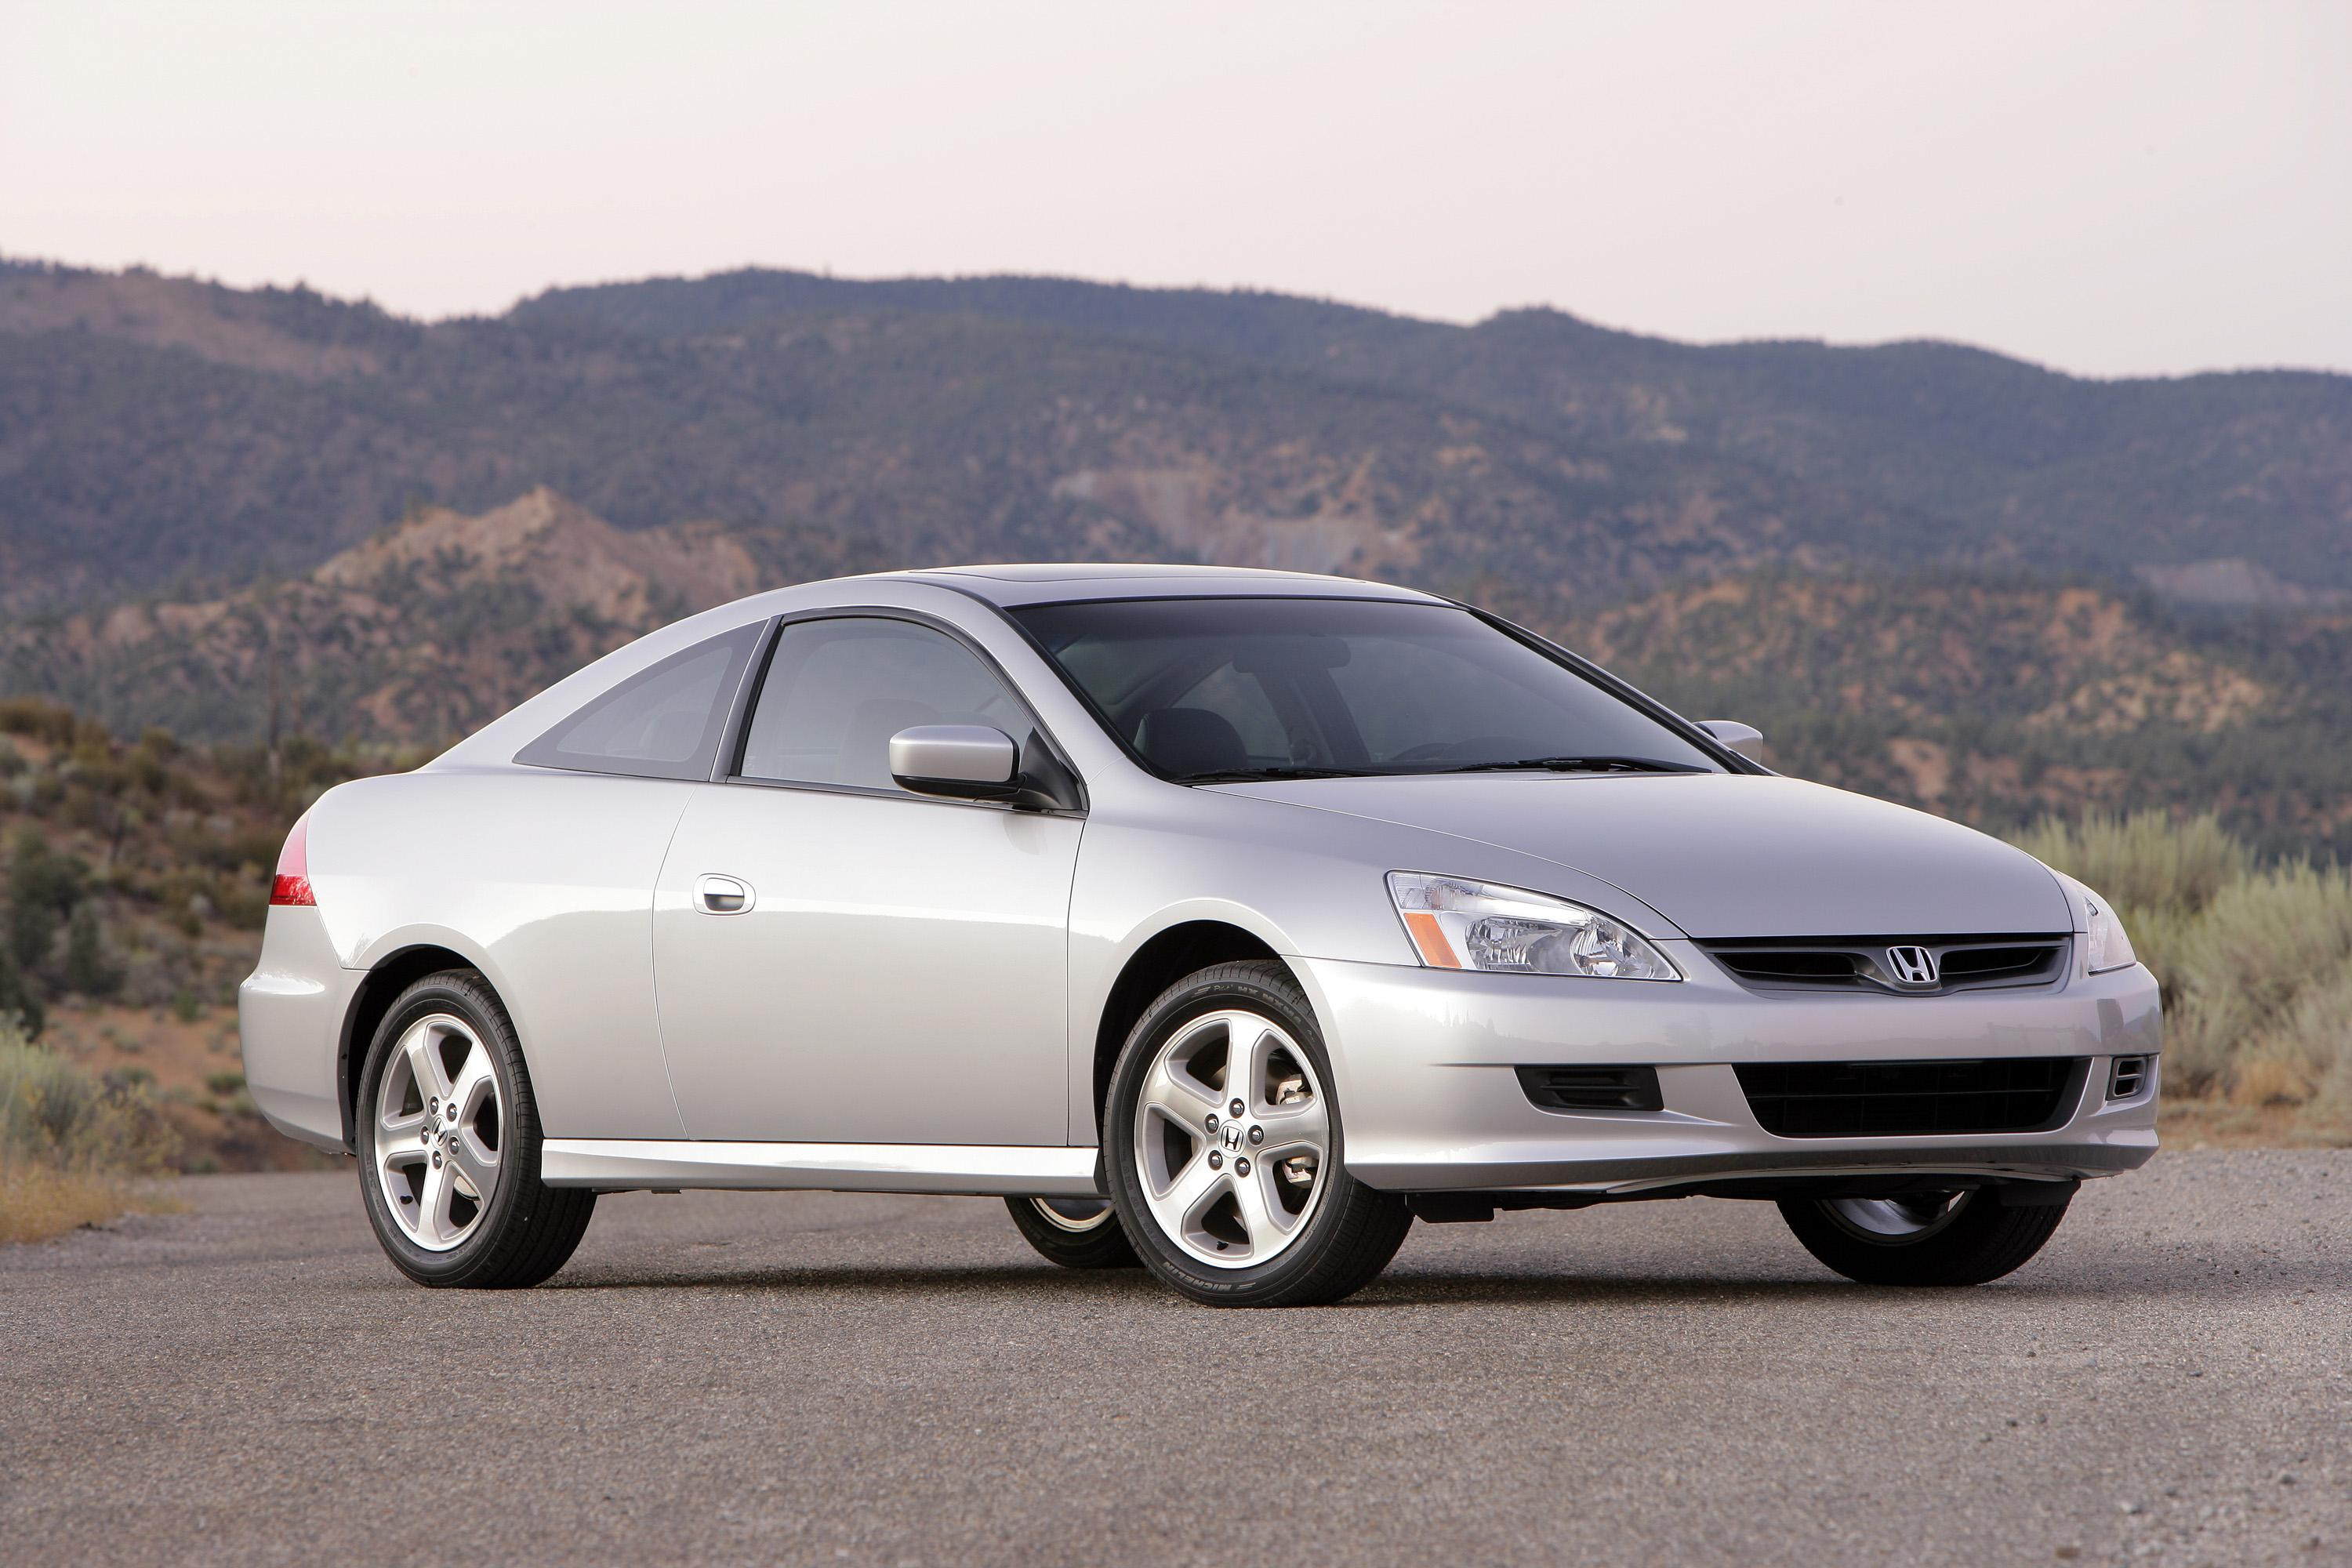 2006 Honda Accord Coupe | Top Speed. »